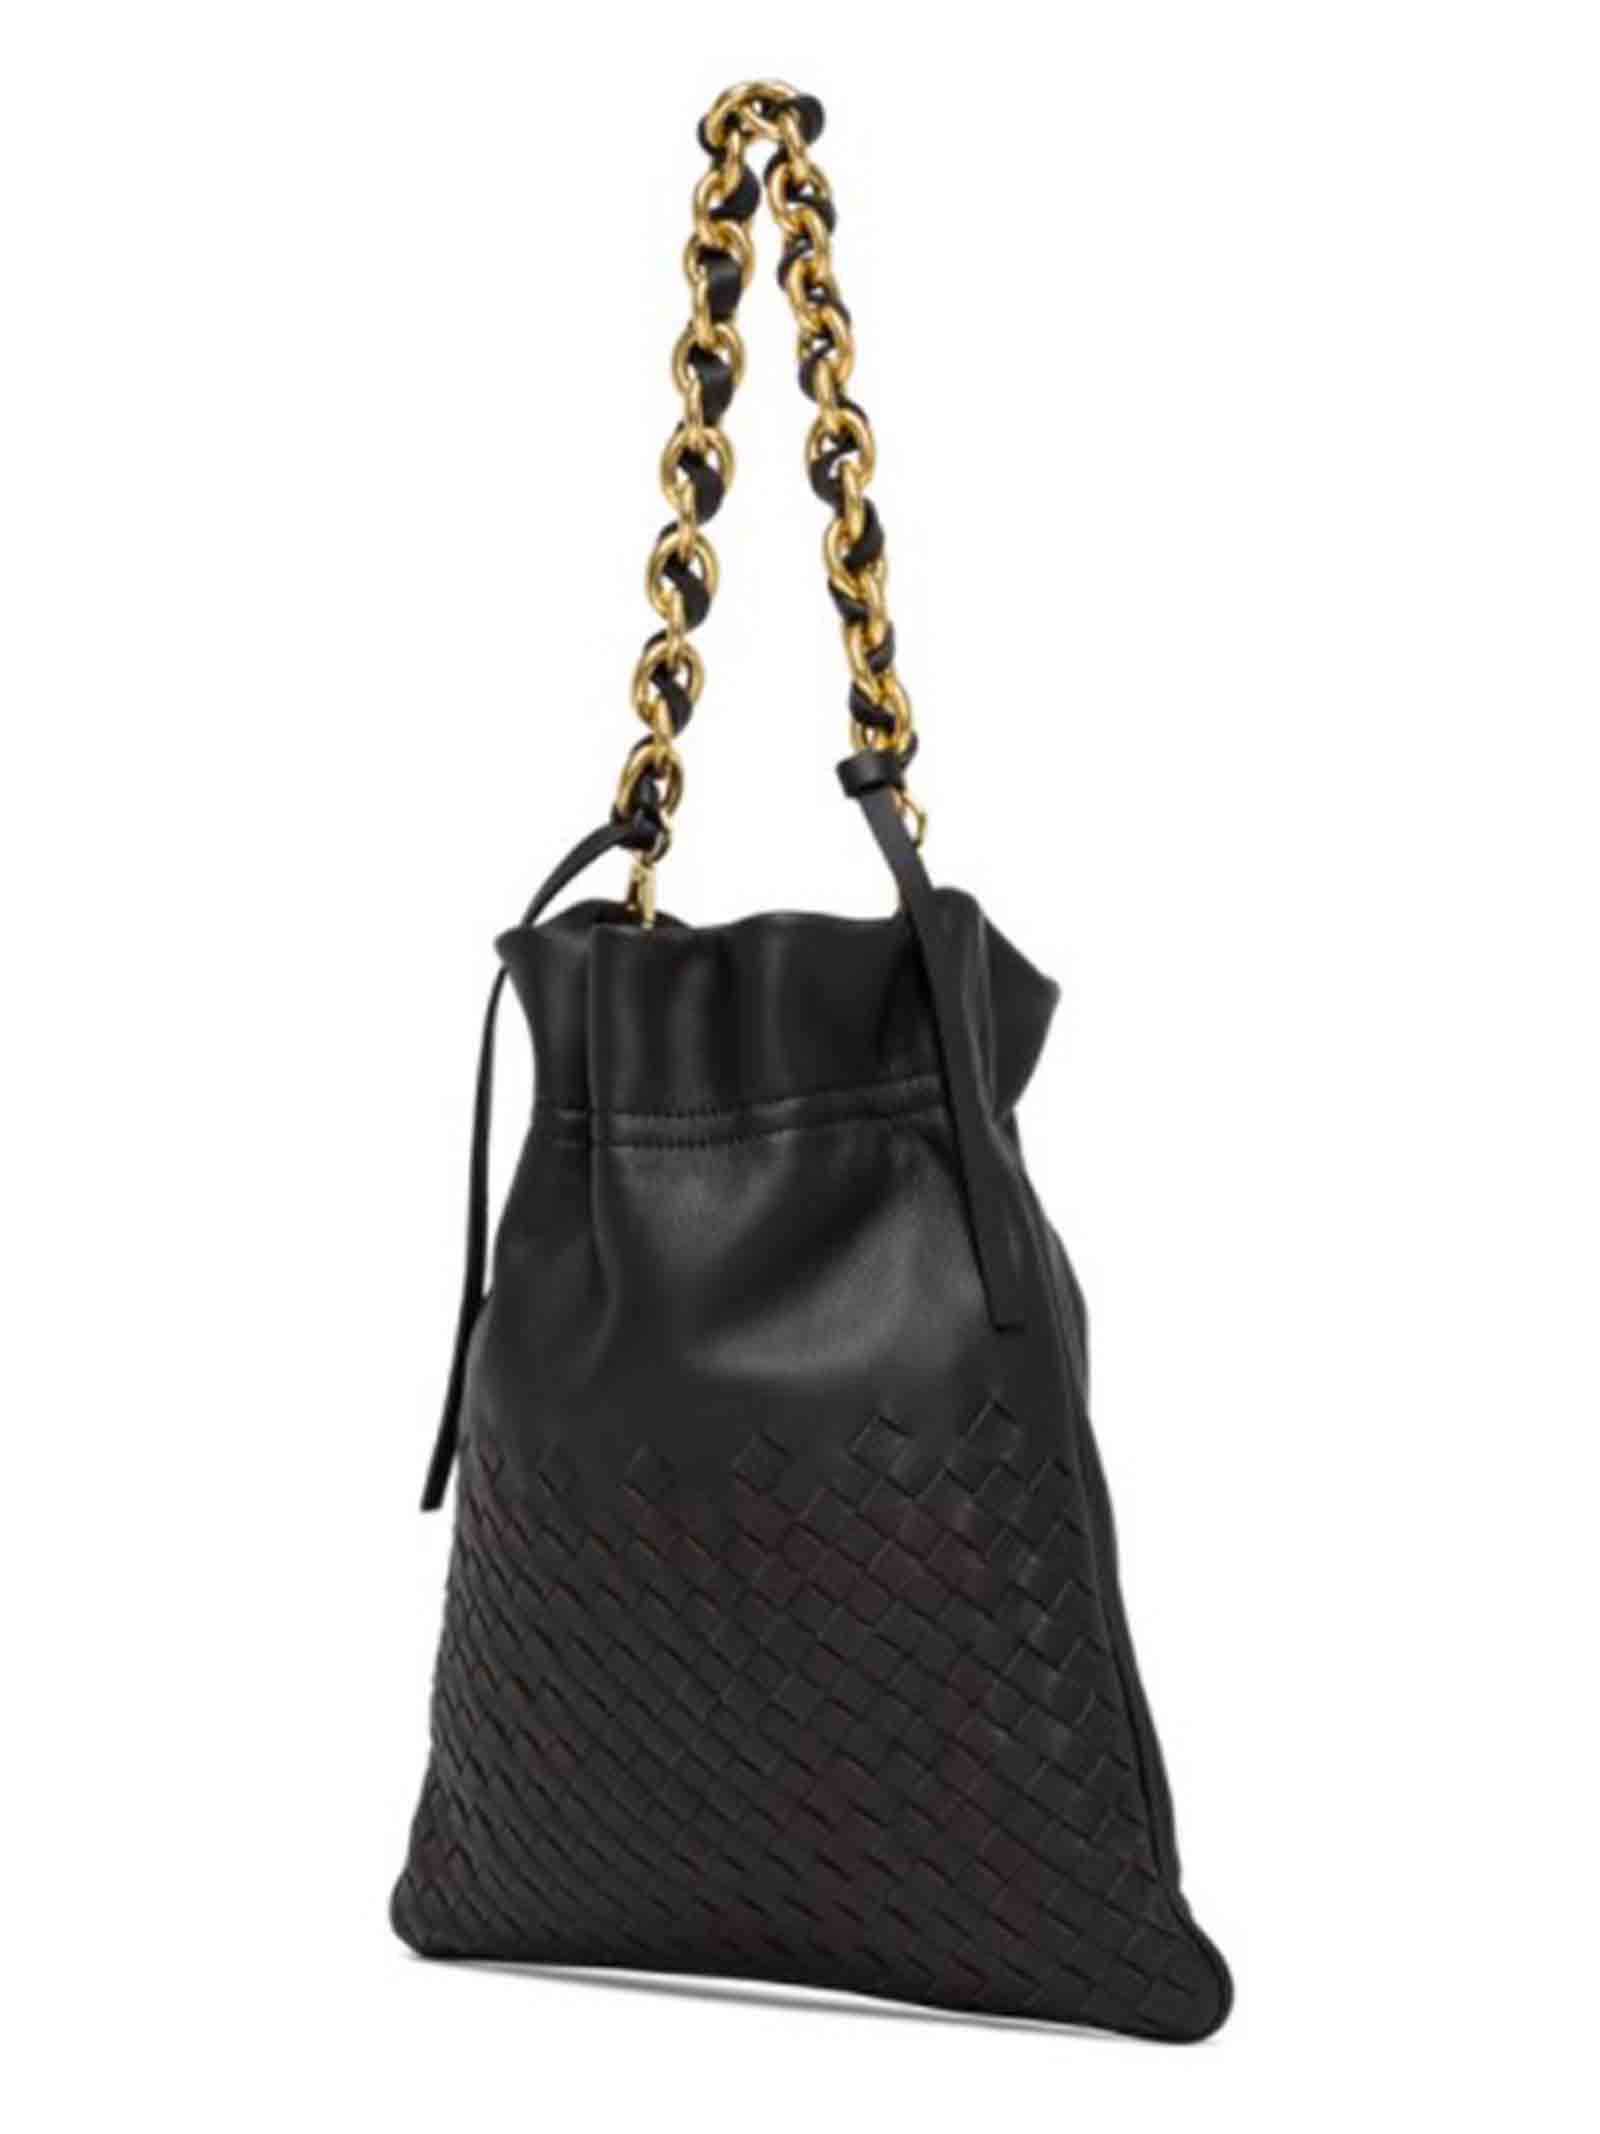 Women's Shoulder Bag Small Memory In Black Leather With Gold Chain Handle and Adjustable and Detachable Leather Cross-body Strap in Matching Color Gianni Chiarini | Bags and backpacks | BS8381001